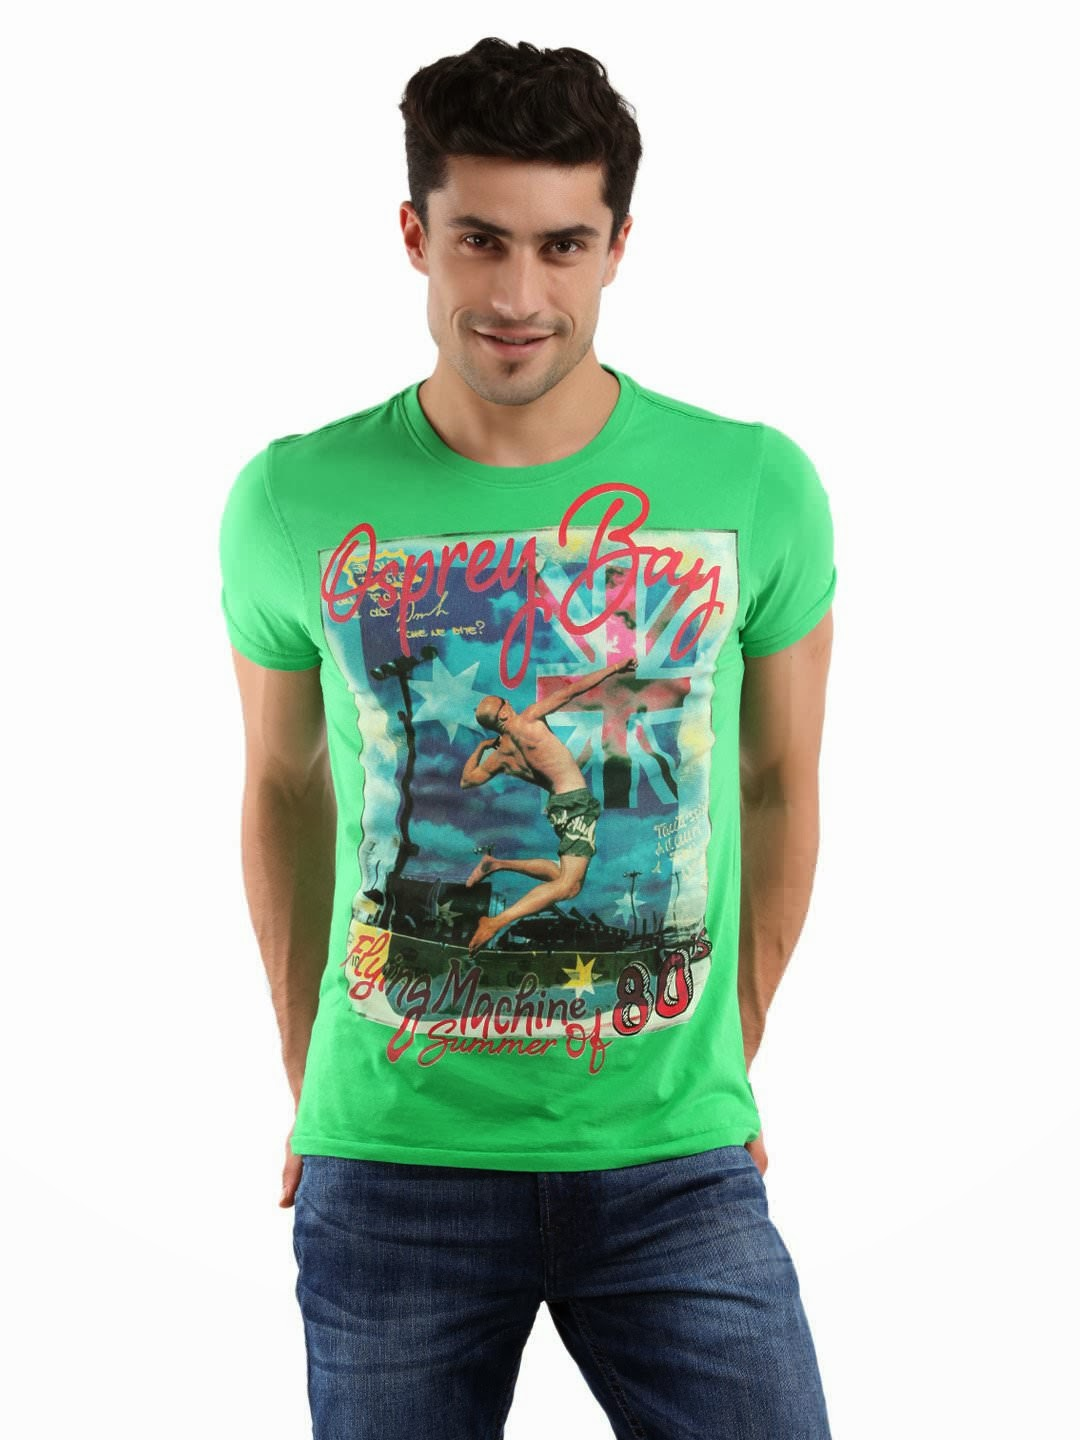 printed shirts tee brand guys shirt mens machine flying graphic prints discharge accessories these vibrant green dyes hope famous using